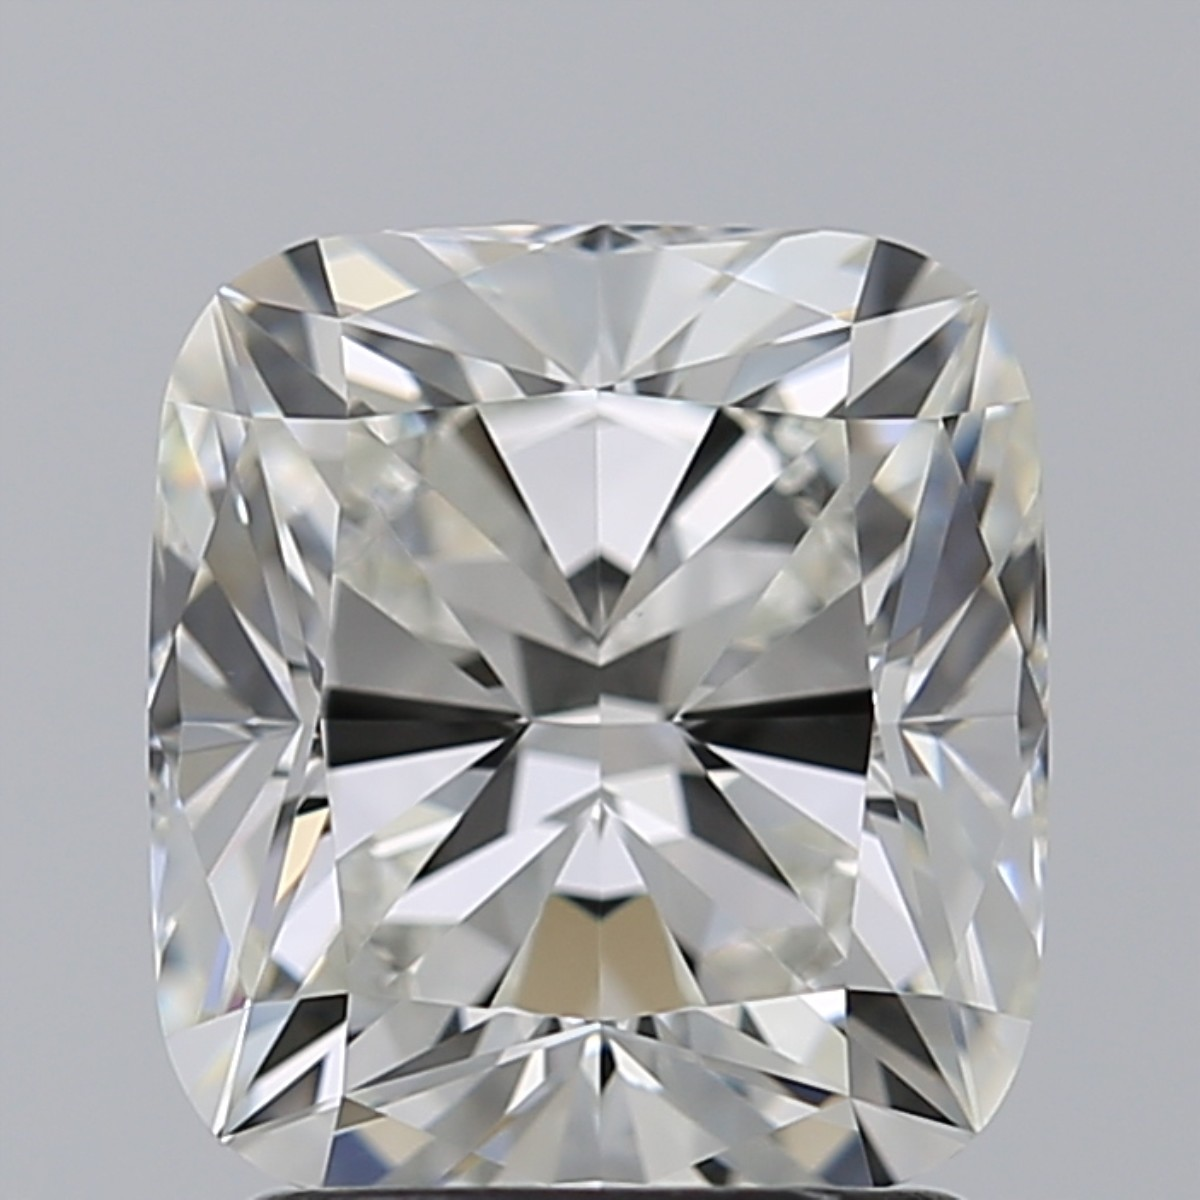 2.02 Carat Cushion Diamond (I/VVS2)